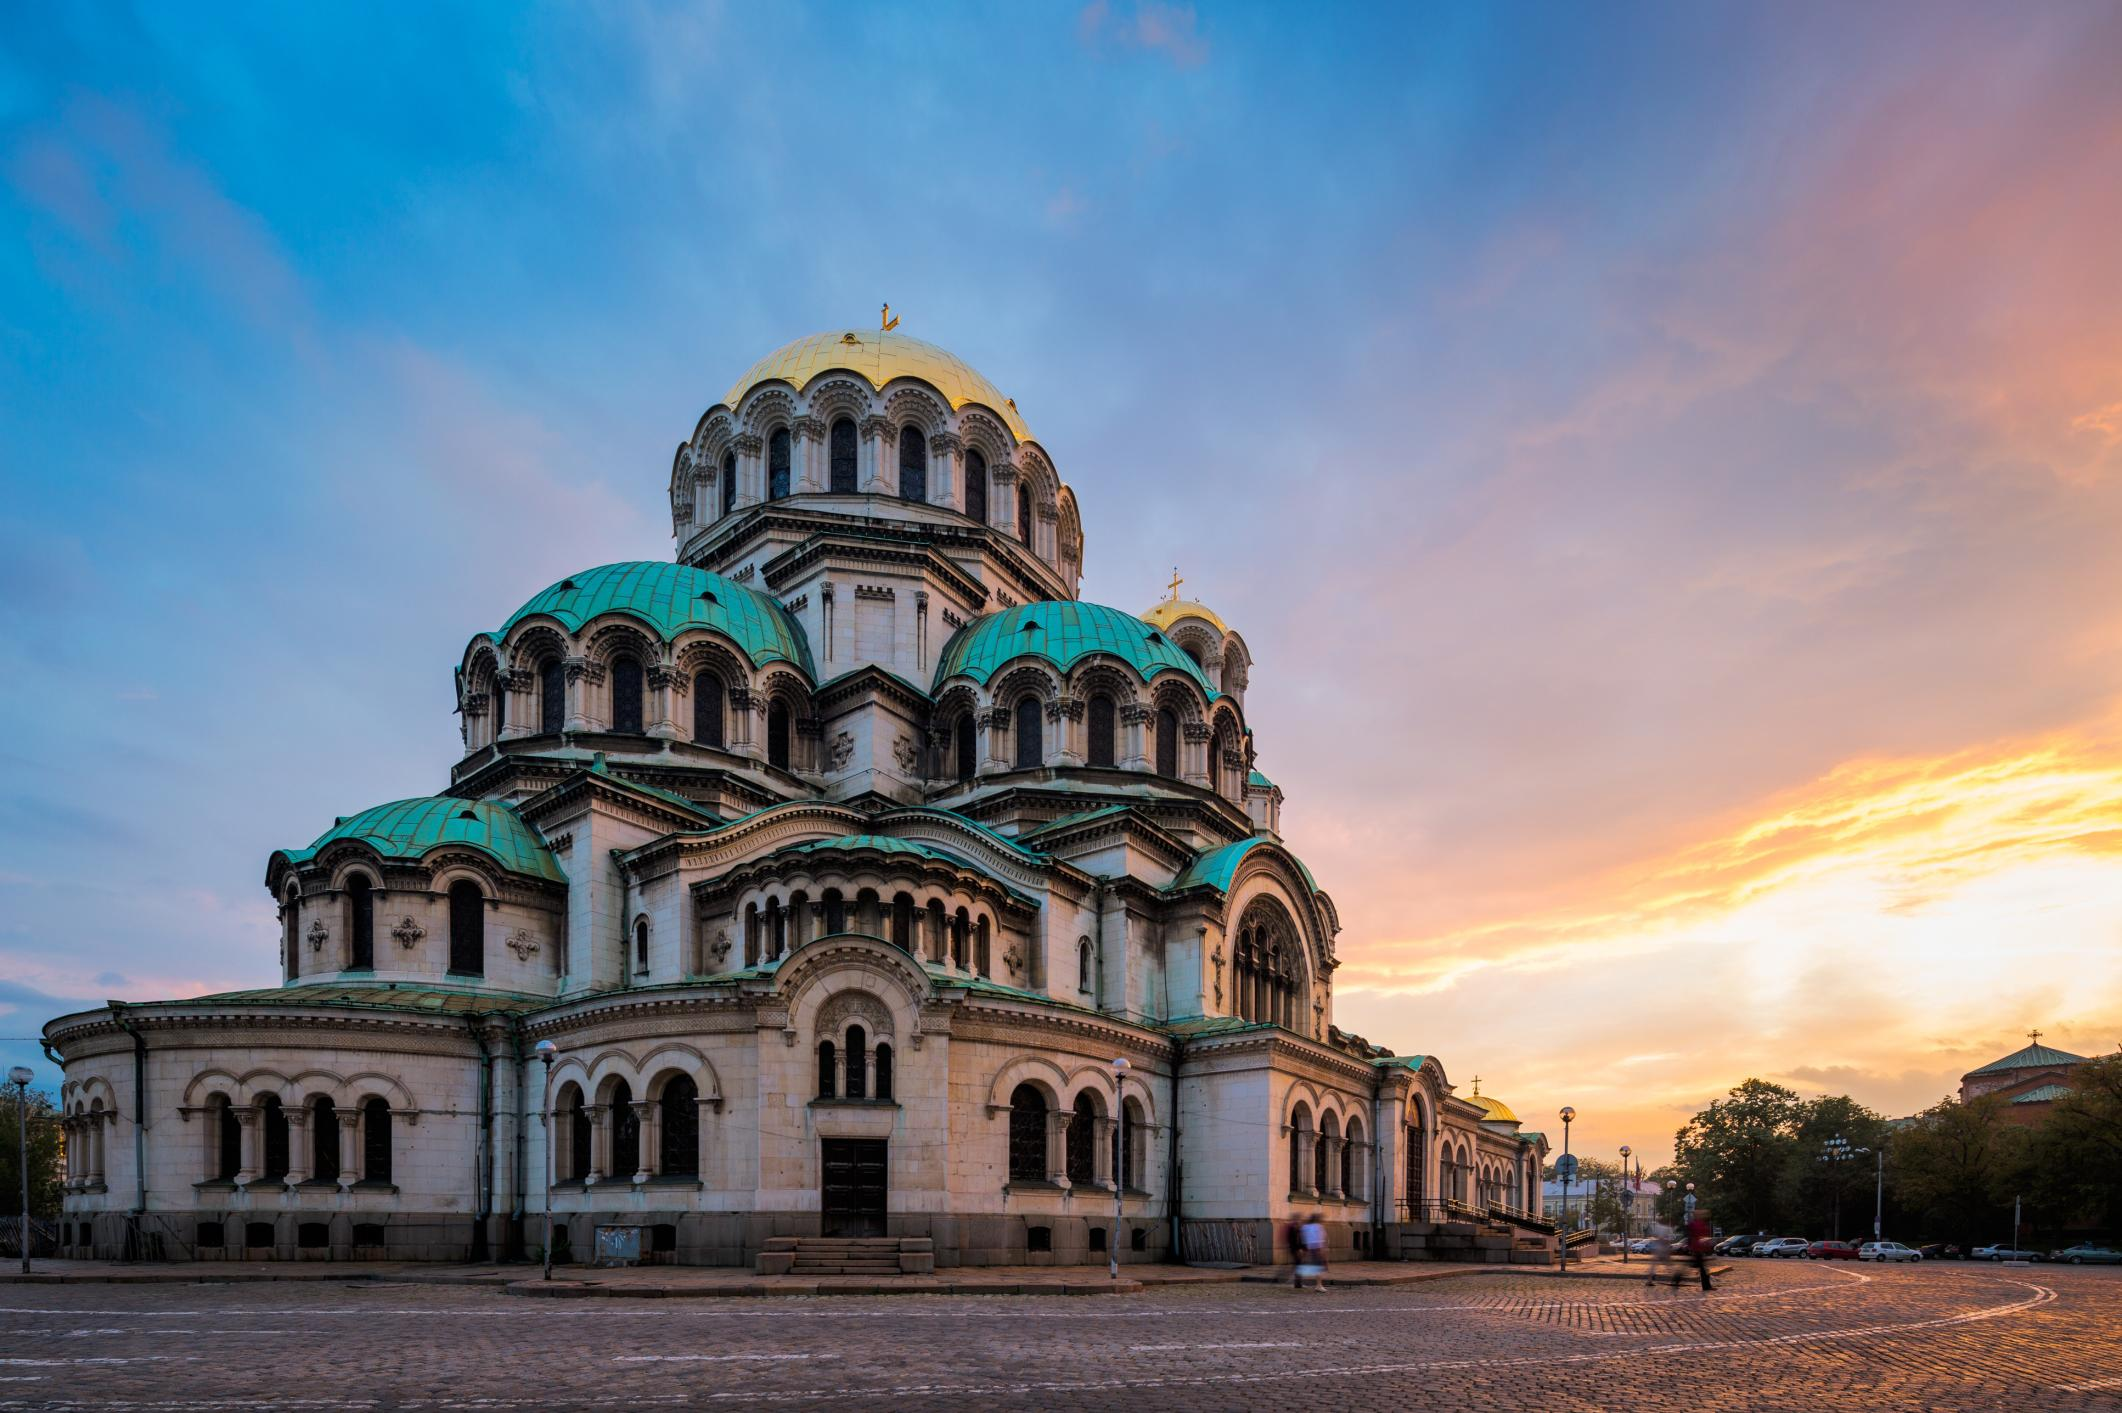 """<p><a href=""""http://www.ryanair.com/"""" target=""""_blank"""">Ryanair</a> is launching new flights from London Stansted to Sofia from April with a daily service and fares starting from £31.99 one way. The Bulgarian capital is one of Europe's oldest cities dating back around 7,000 years. Sofia has an East meets West feel, with a mix of orthodox churches, public gardens and excellent nightlife.</p>"""